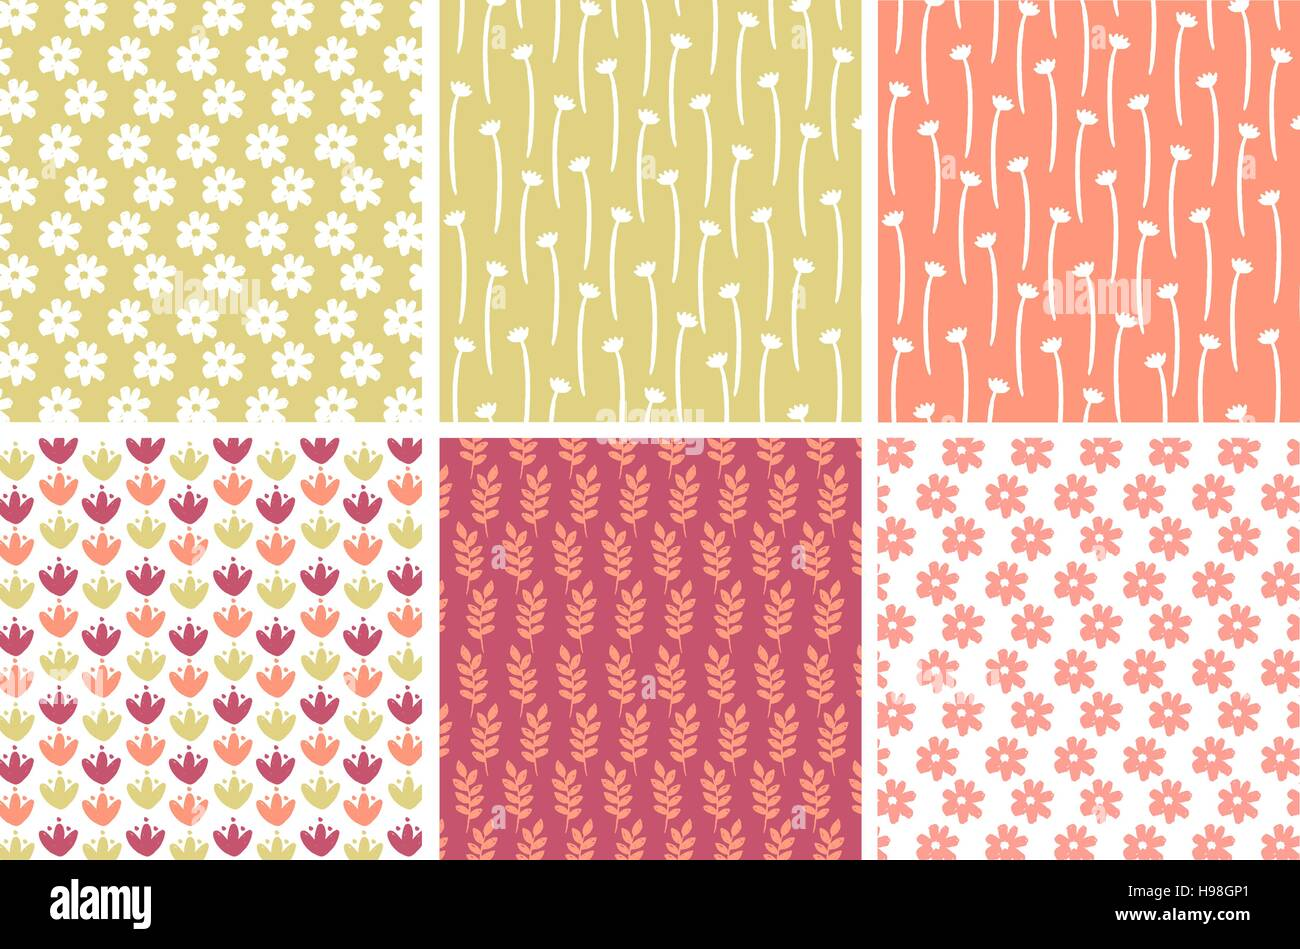 Pastel Floral Patterns Stock Vector Art Illustration Vector